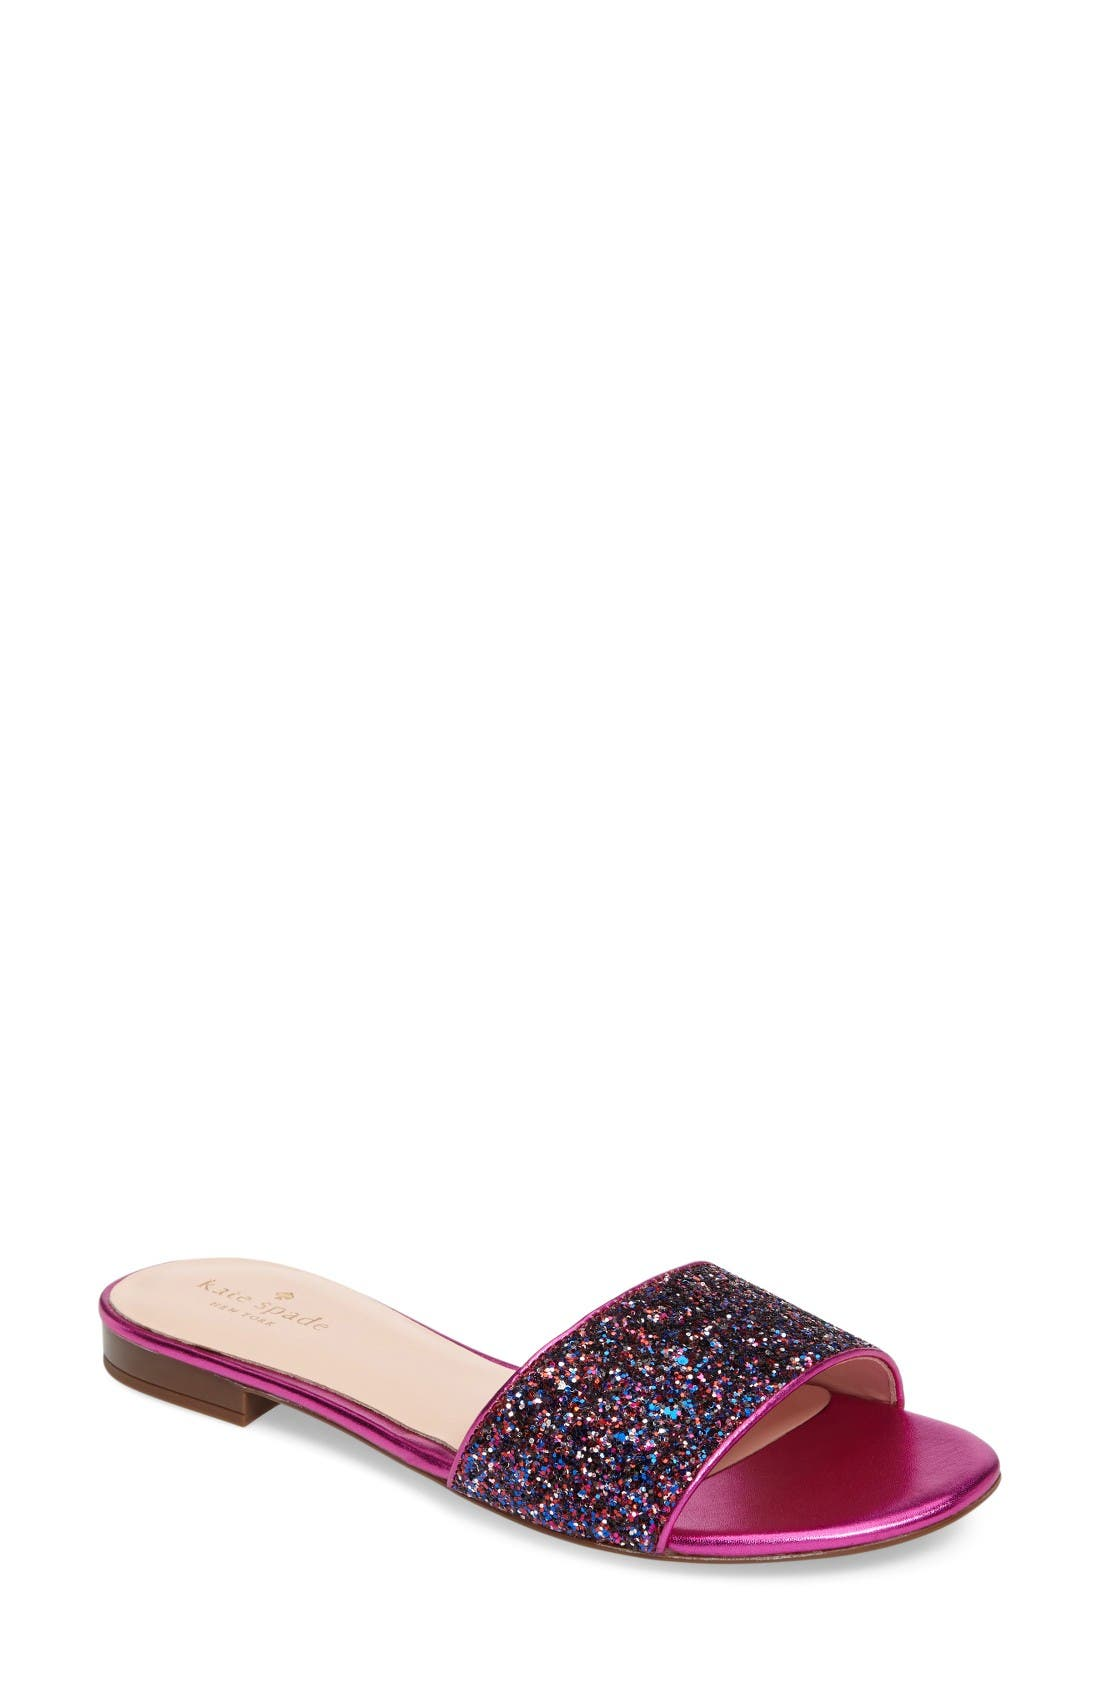 KATE SPADE NEW YORK madeline embellished slide sandal